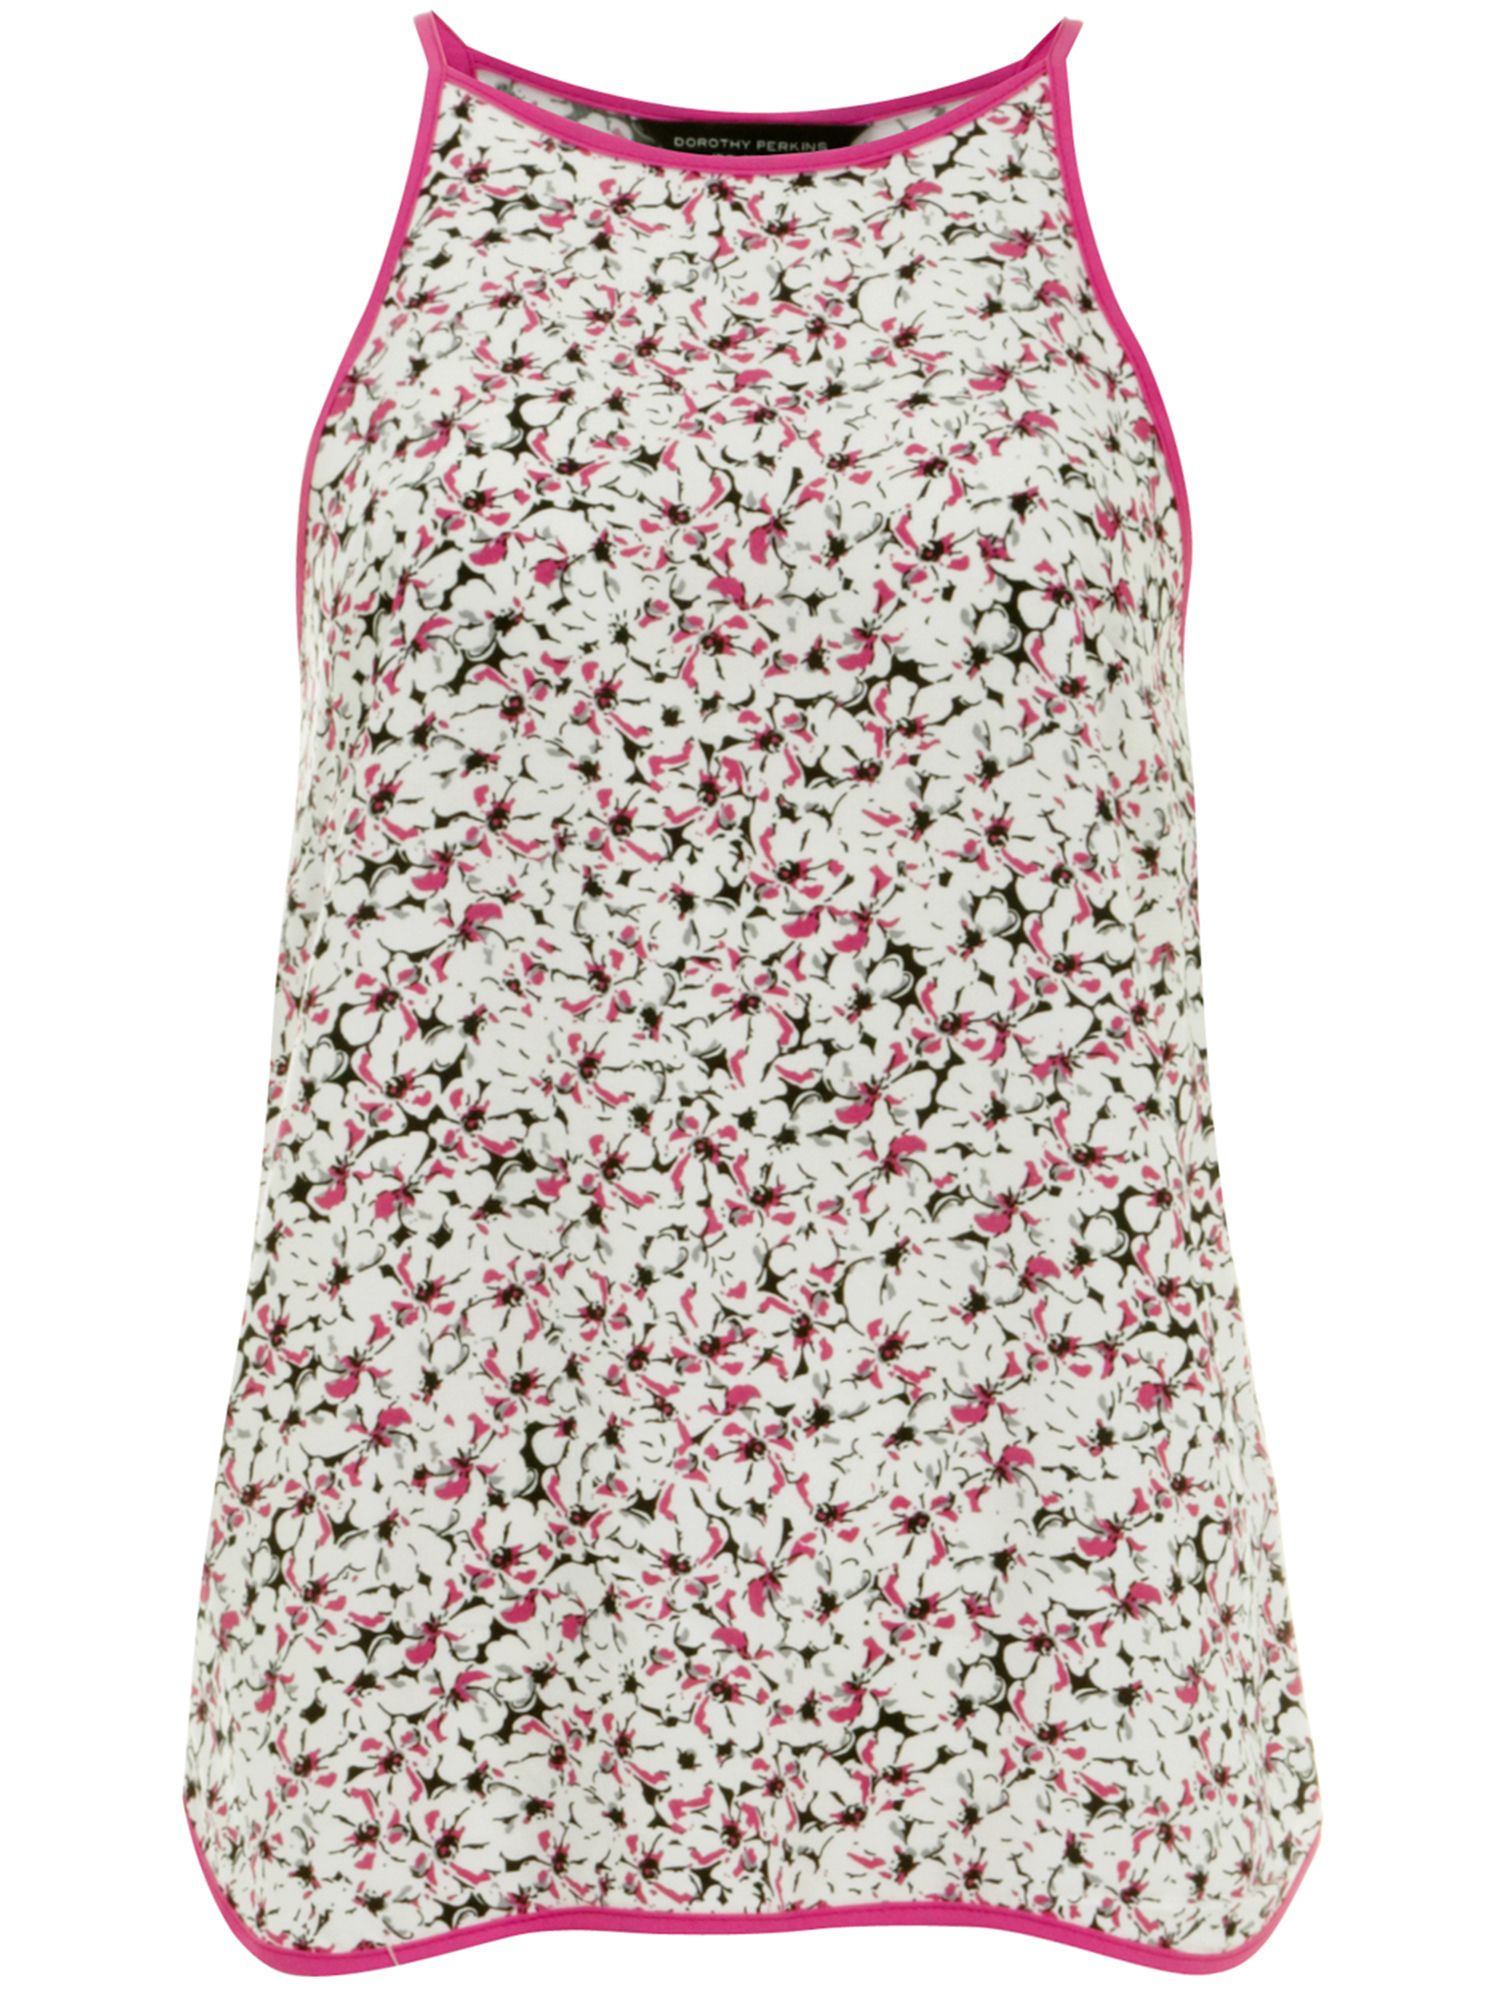 Floral Piped Camisole